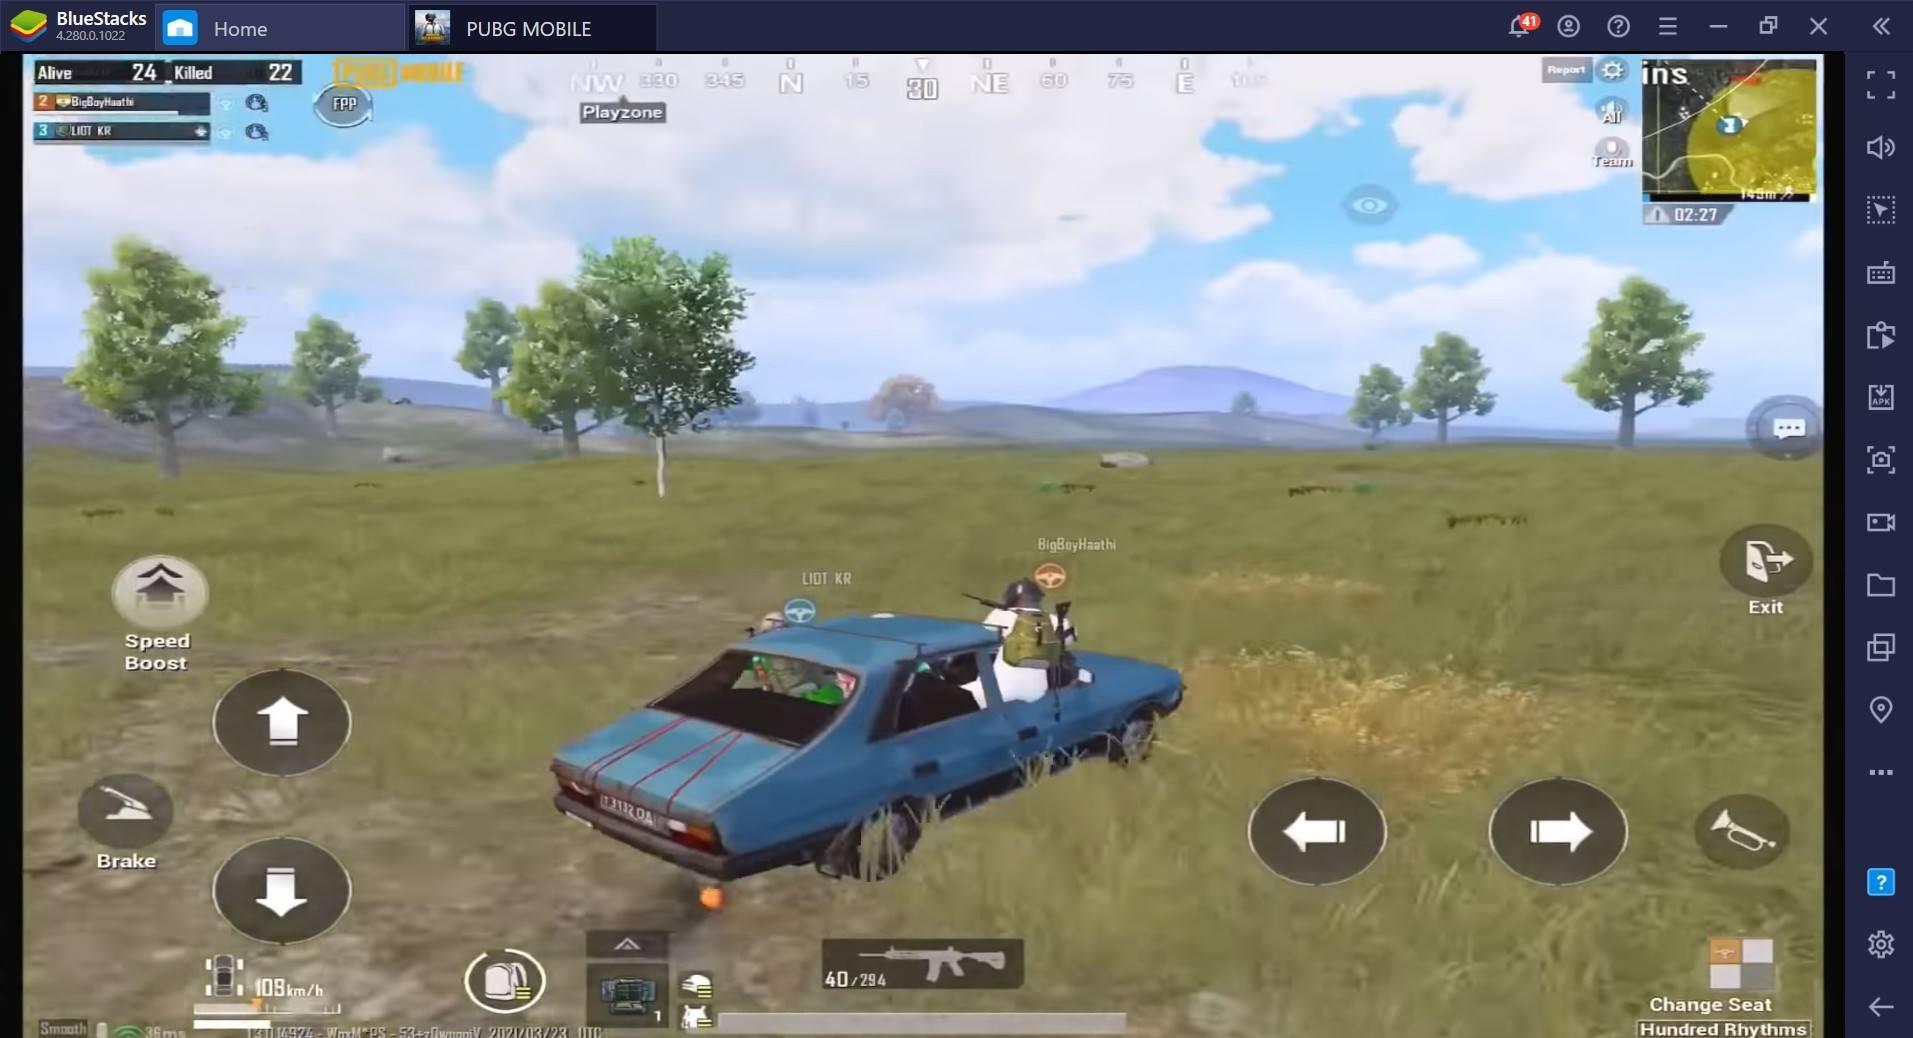 PUBG Mobile: The BlueStacks Camping Guide for Faster Rank Push